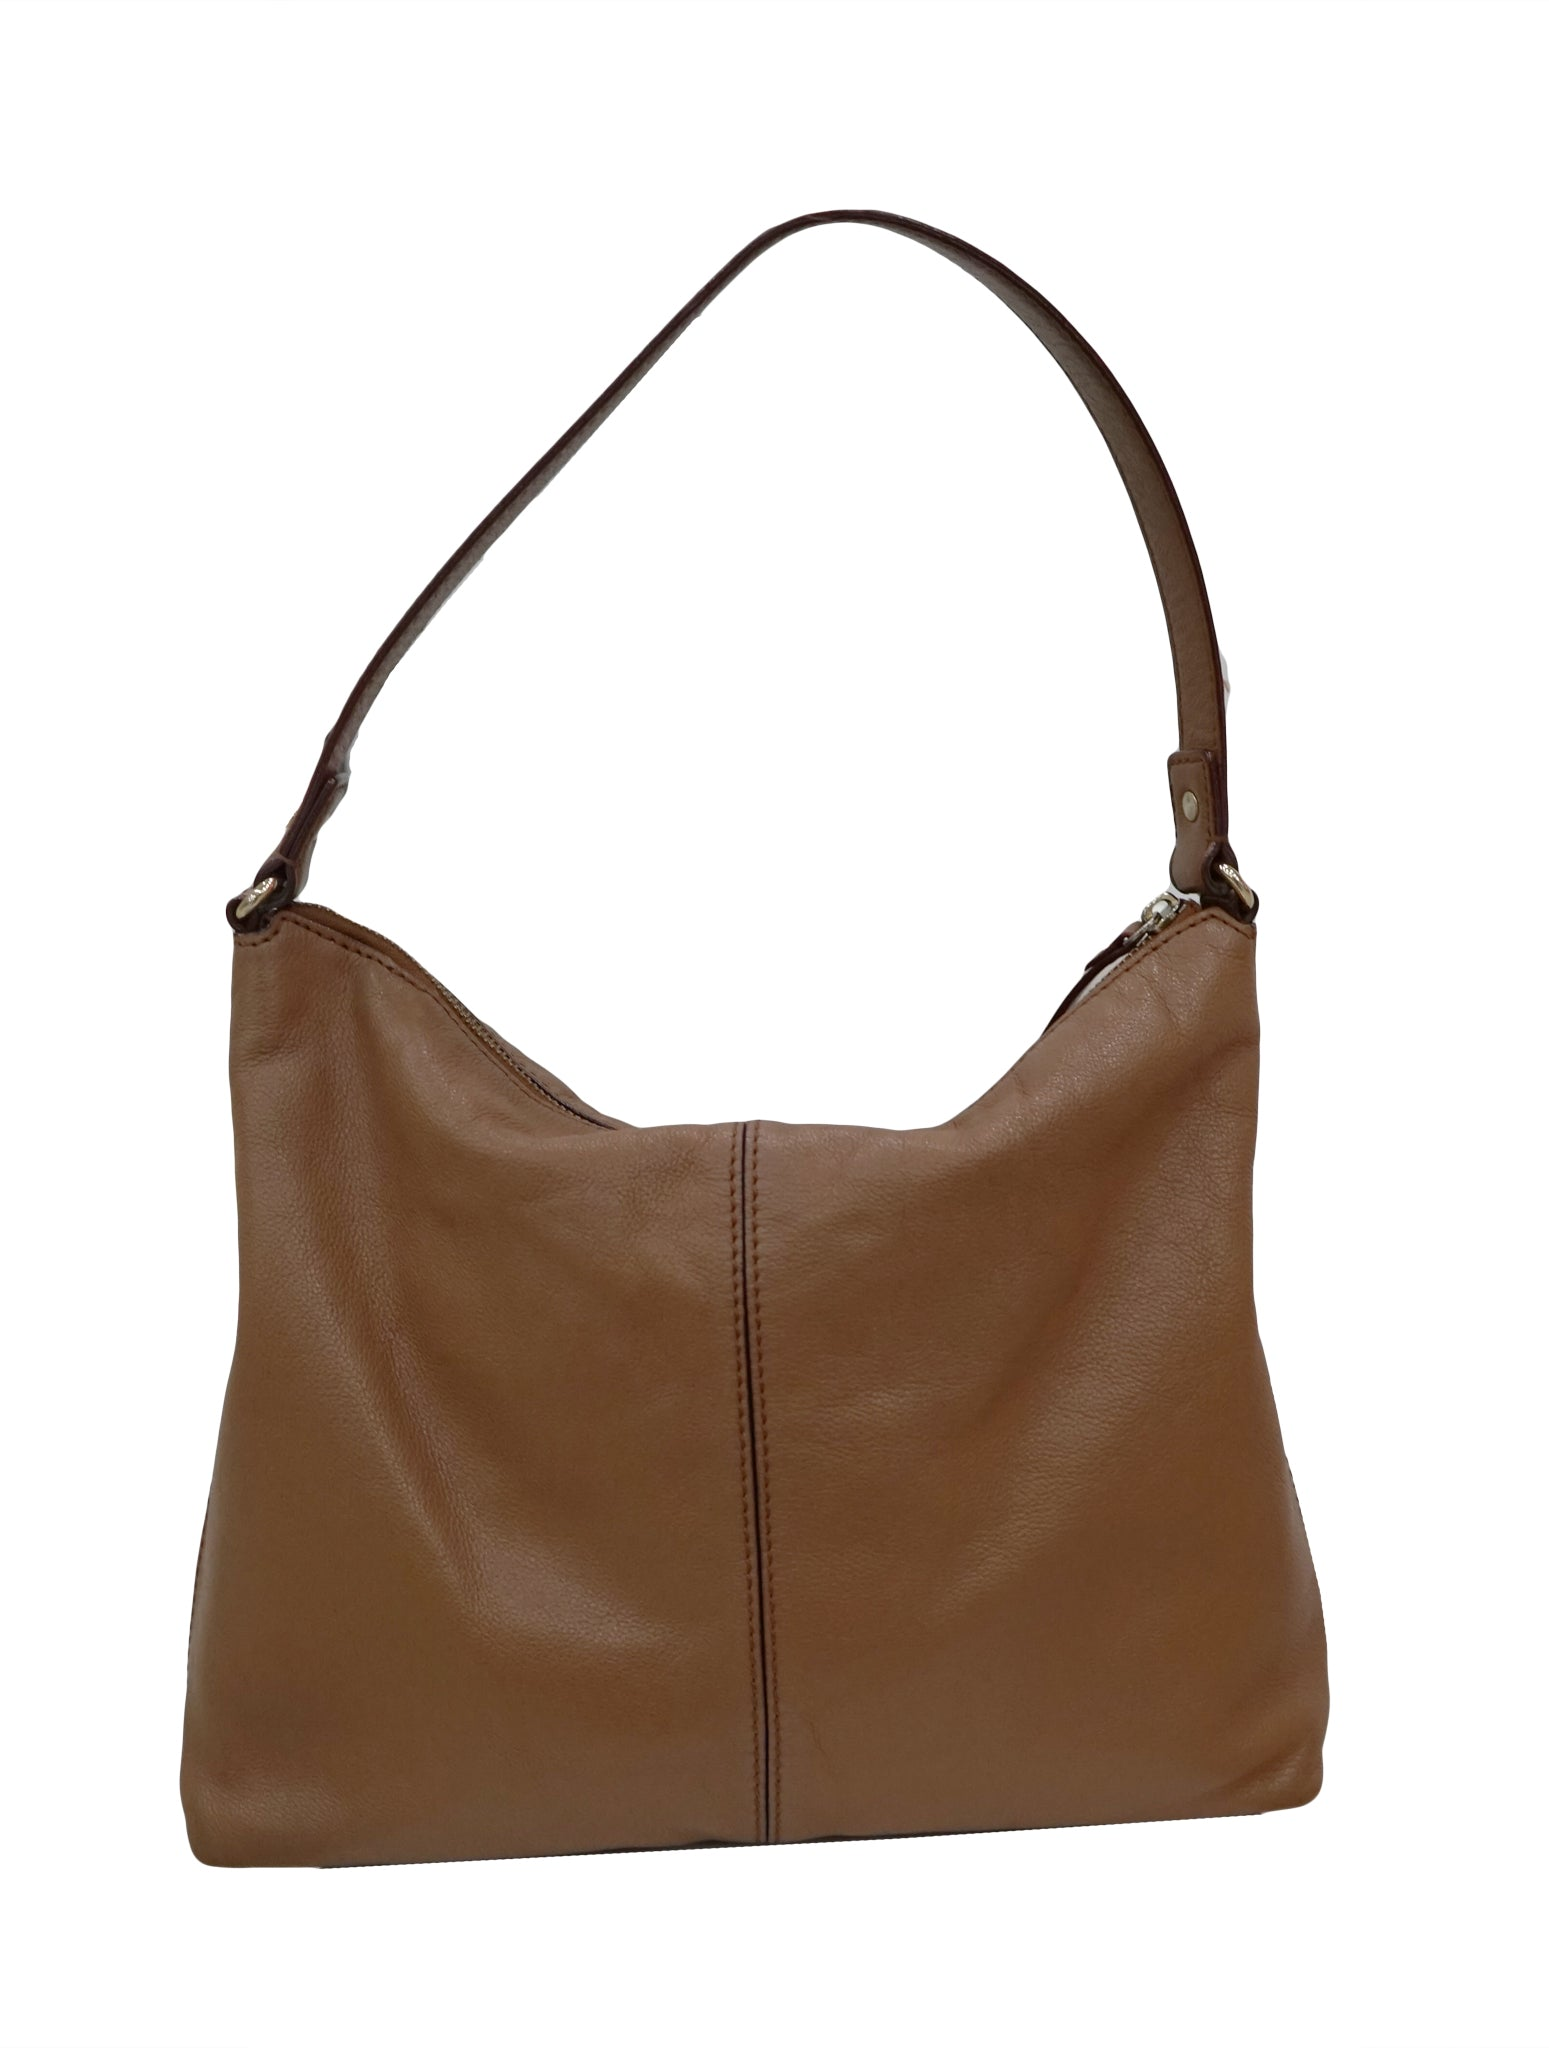 BROWN LEATHER SATCHEL BAG - kidsstyleforless